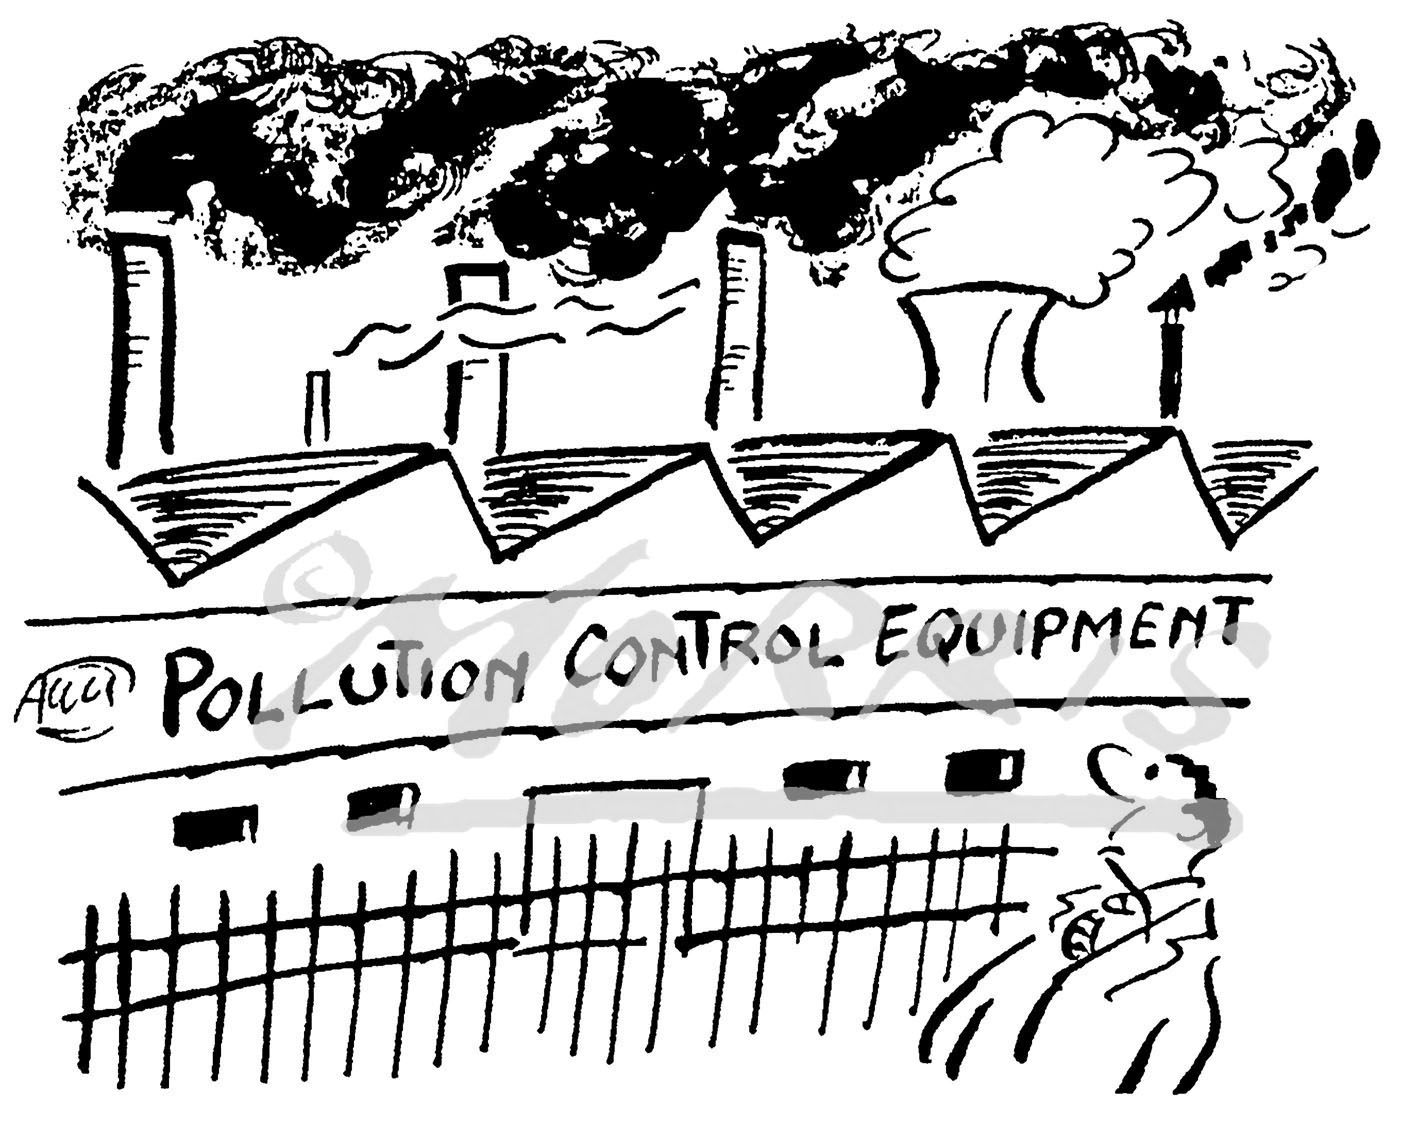 Environment cartoon, Clean Air cartoon, Pollution comic cartoon – Ref: 5146bw